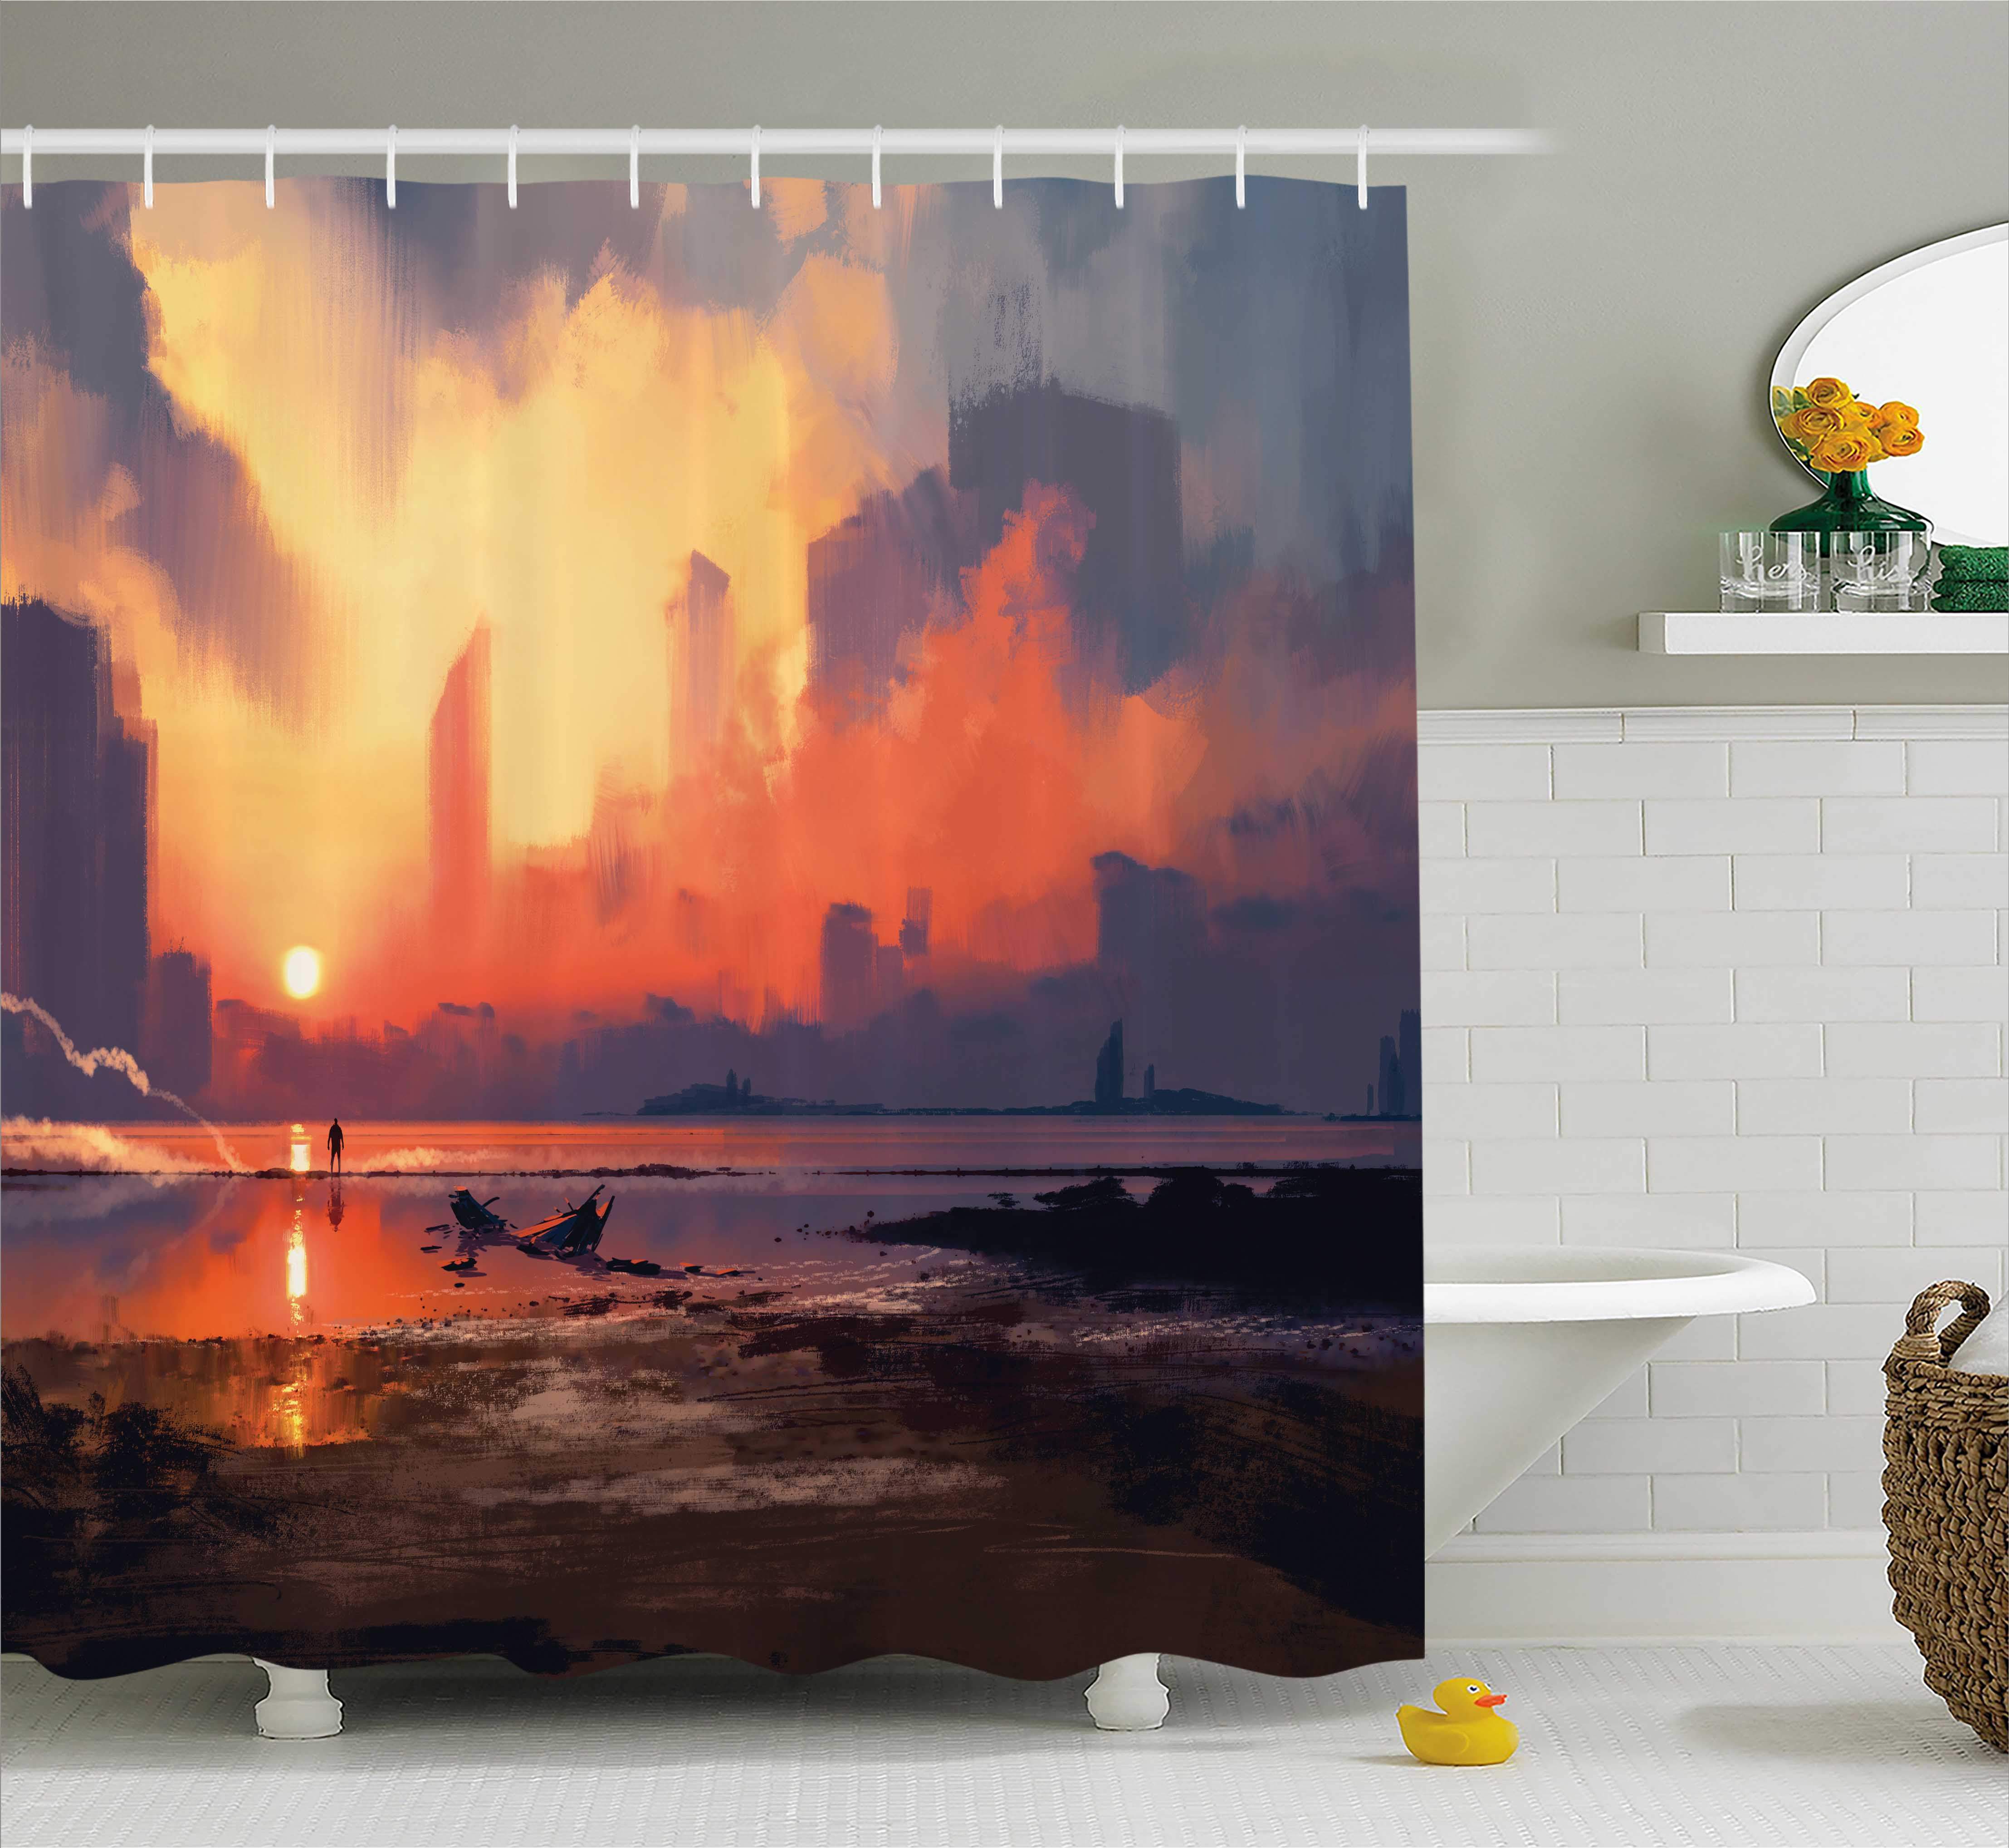 Fantasy World Decor Shower Curtain, Man on Sandy Beach with City Skyscrapers Skyline Sunset Oil Graphic, Fabric Bathroom Set with Hooks, 69W X 84L Inches Extra Long, Orange Blue, by Ambesonne